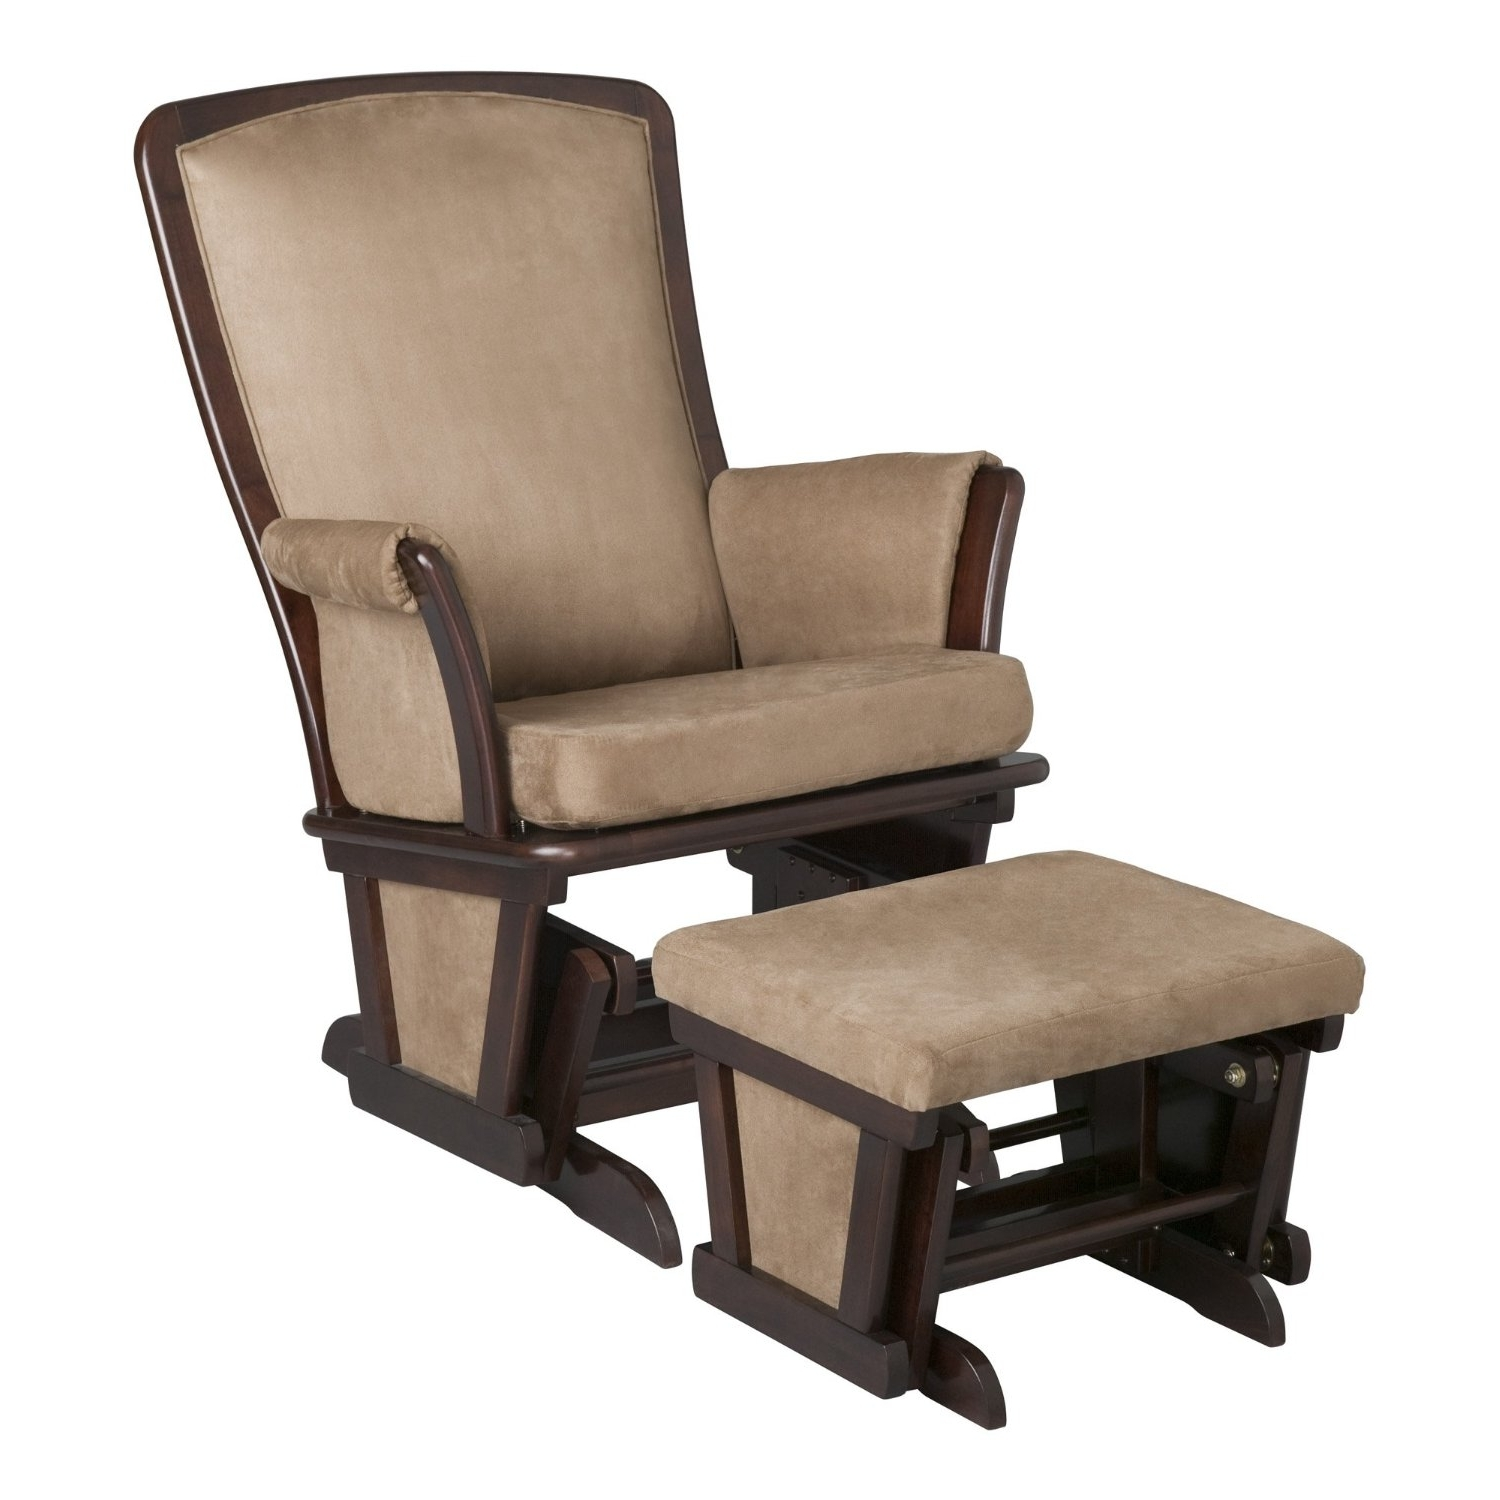 2018 Furniture: Best Rated Nursery Gliders,rocking Chairs Reviews 2015 With Rocking Chairs With Ottoman (View 4 of 20)